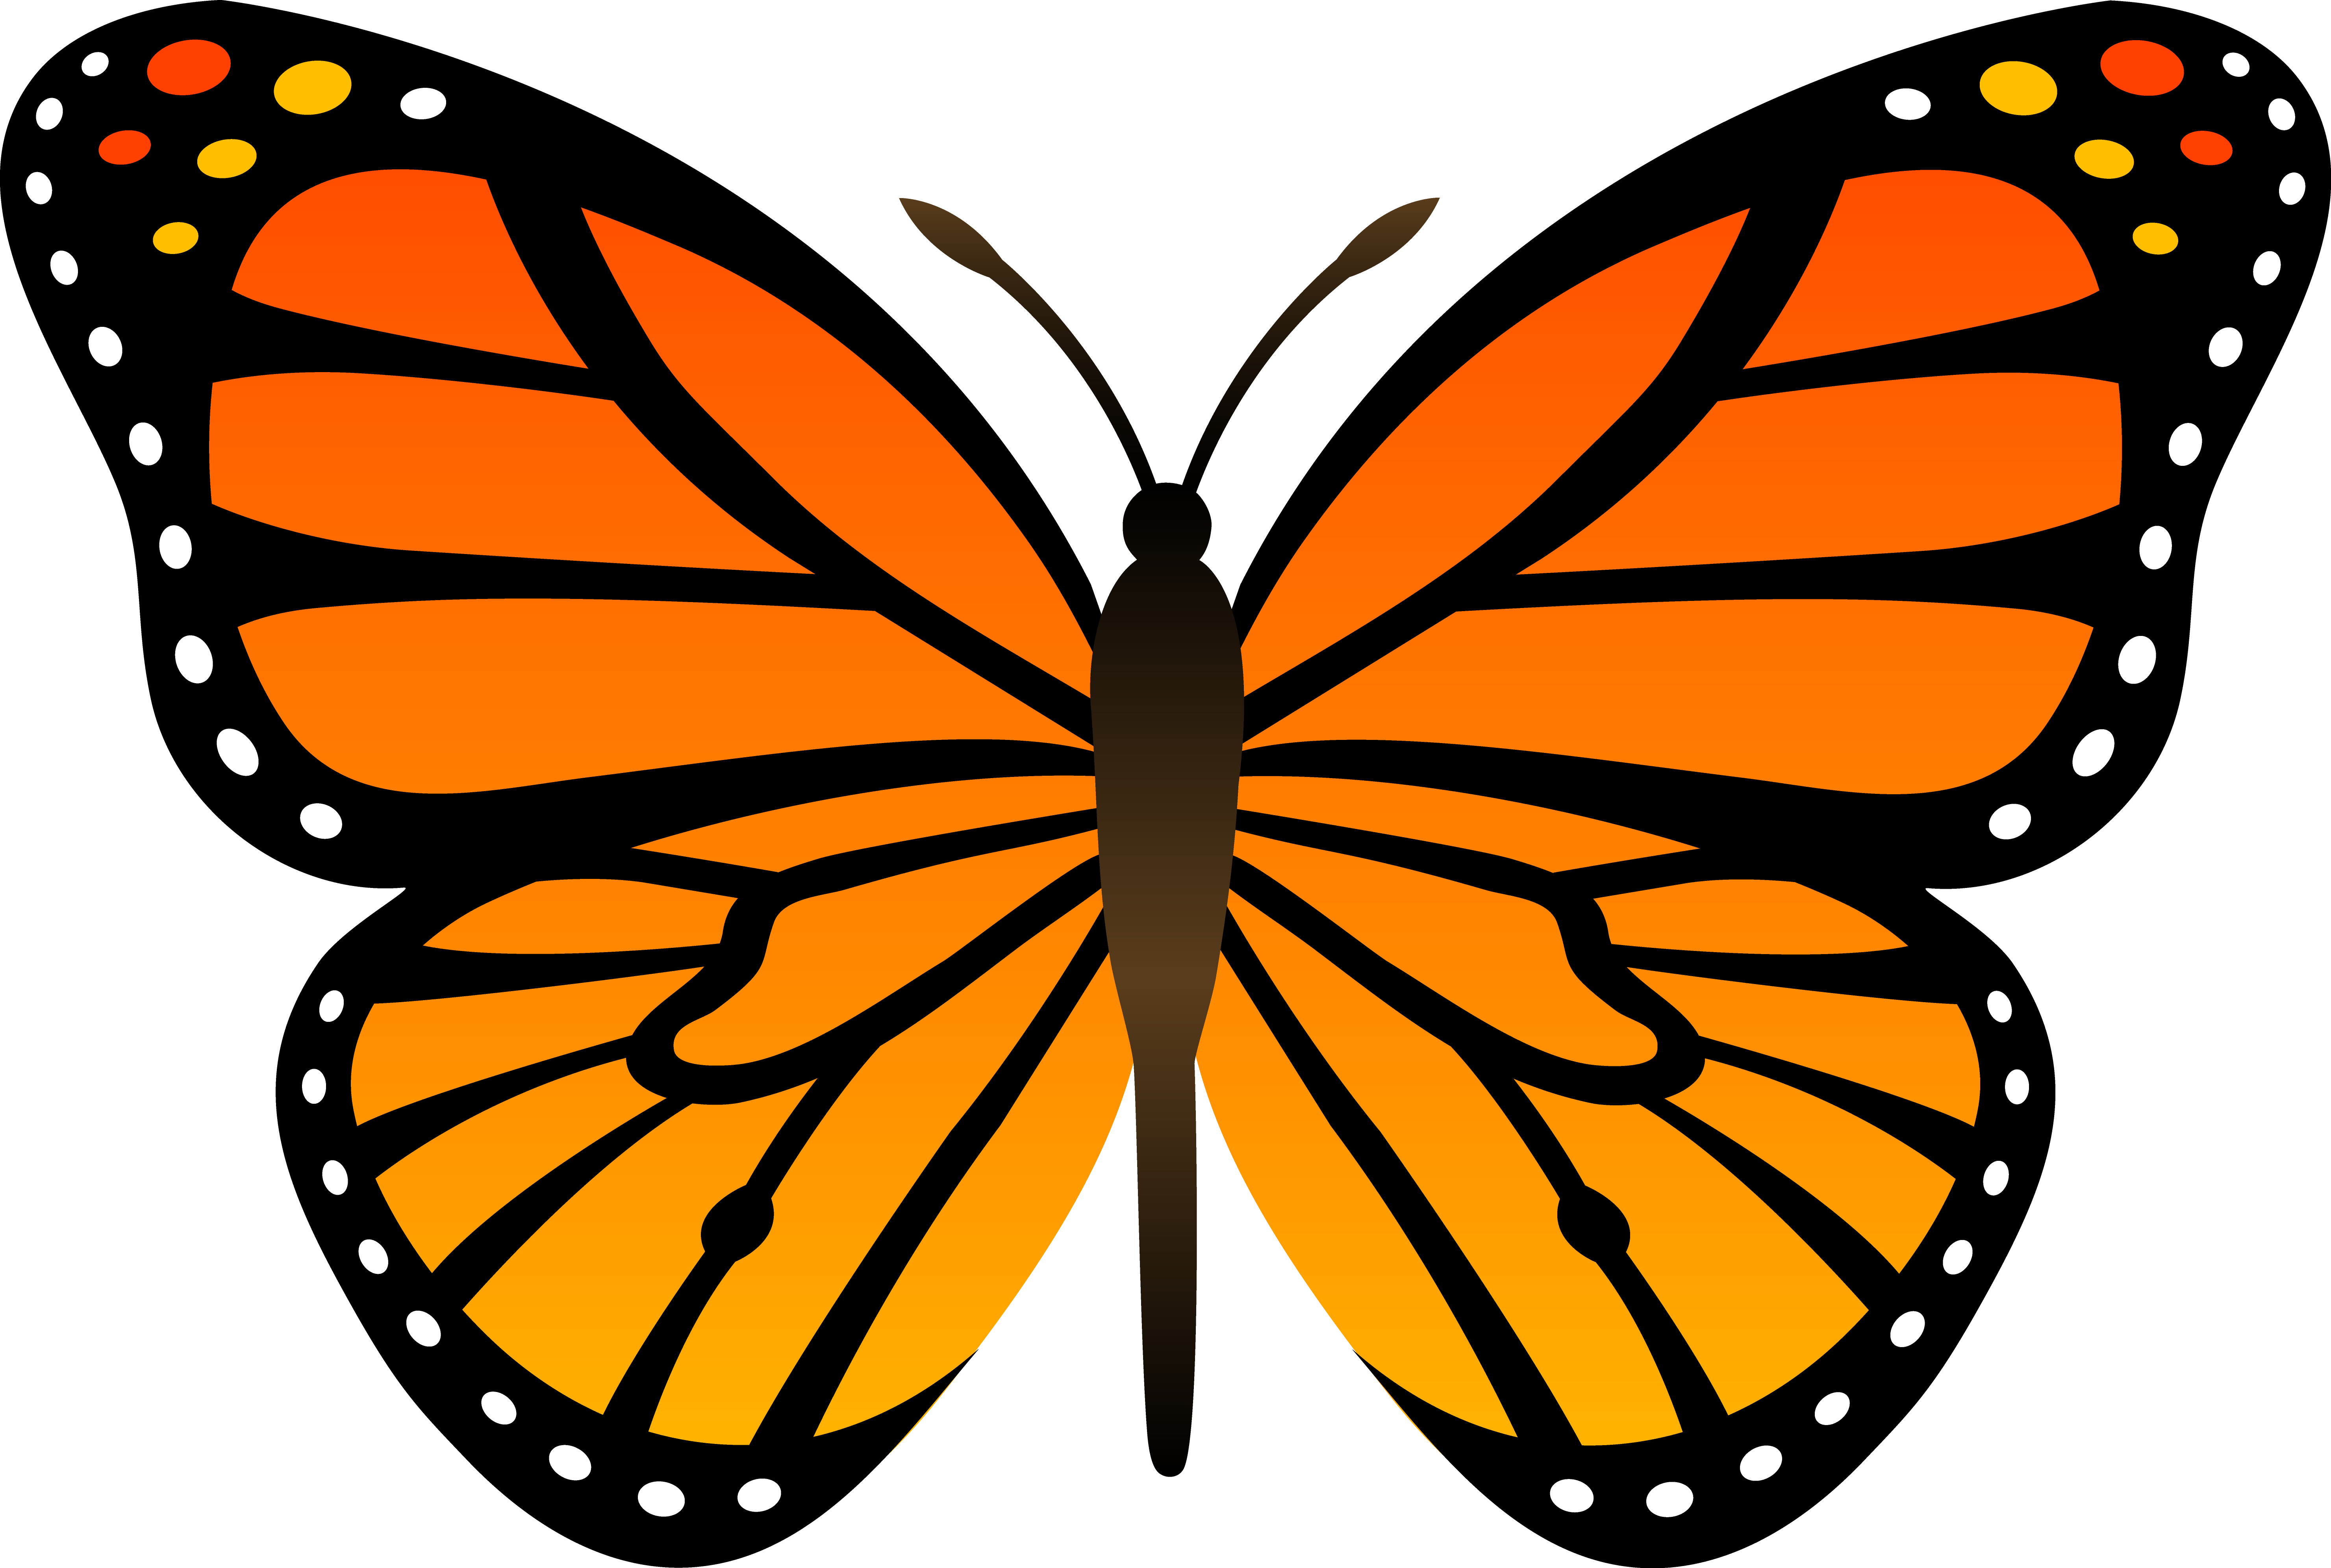 Free clipart butterfly images clip art library download Monarch Butterfly Clip Art & Monarch Butterfly Clip Art Clip Art ... clip art library download